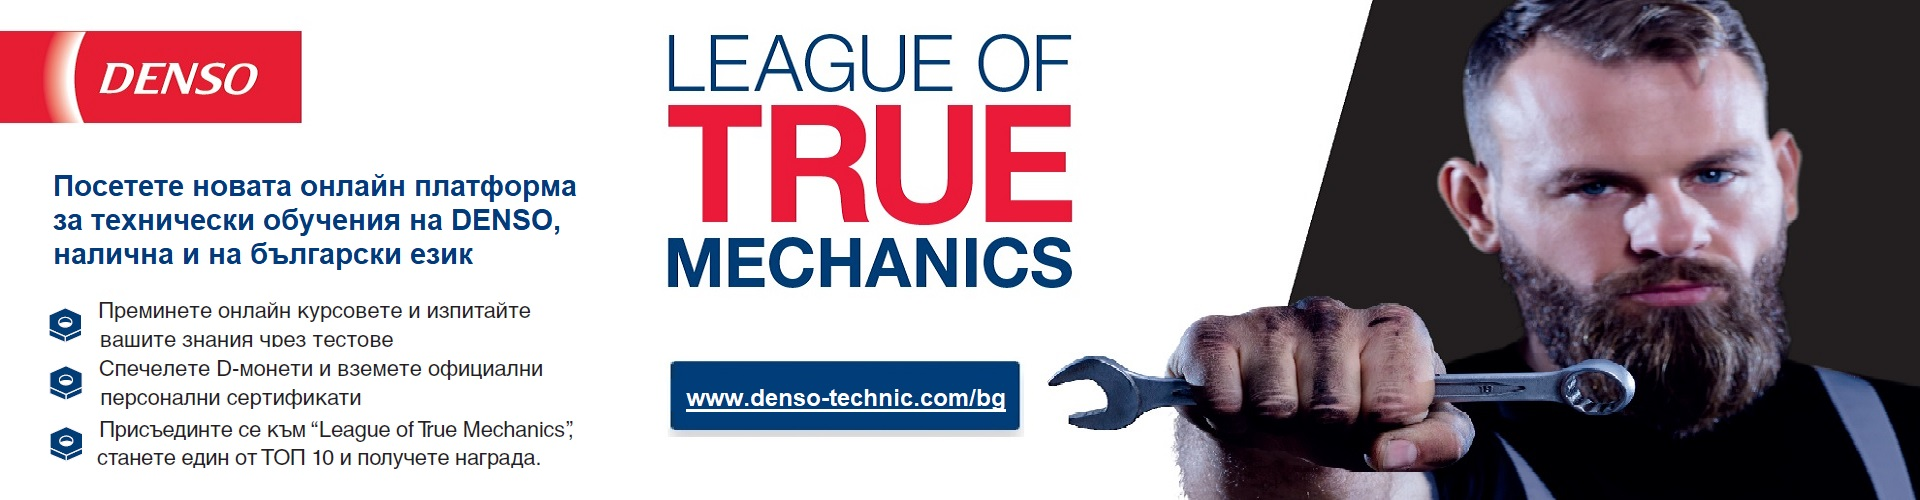 denso_e-learning_banner.jpg